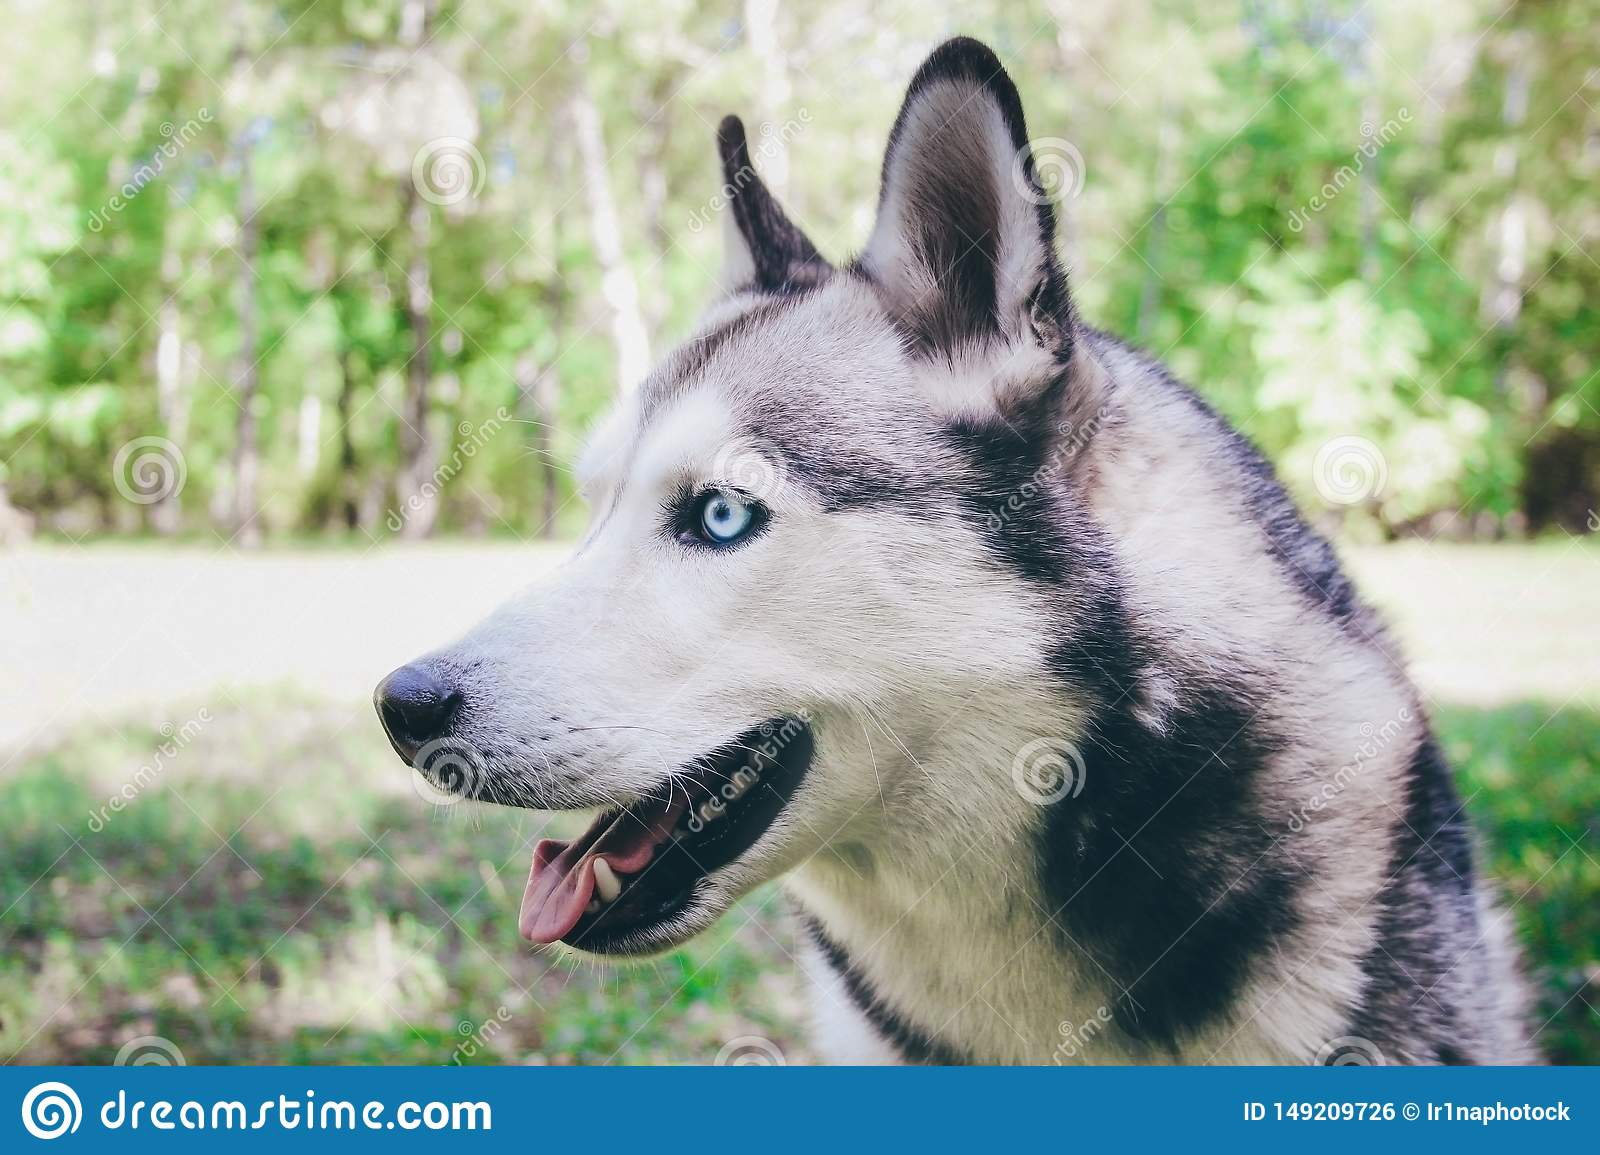 Siberian Husky on the grass in a park